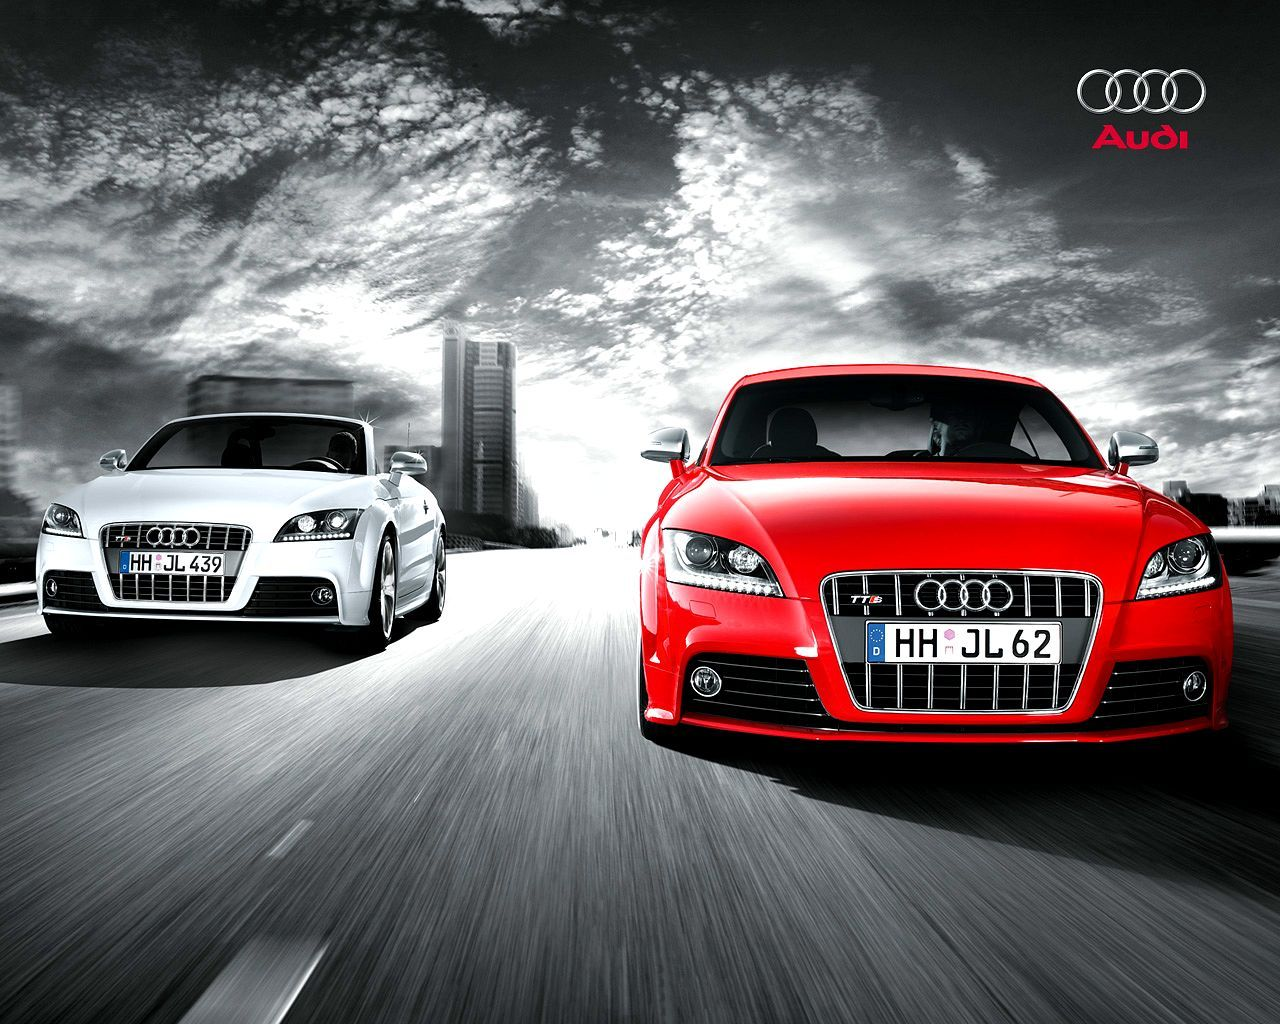 You Can Download Audi Car Hd Wallpapers Here Audi Car Hd